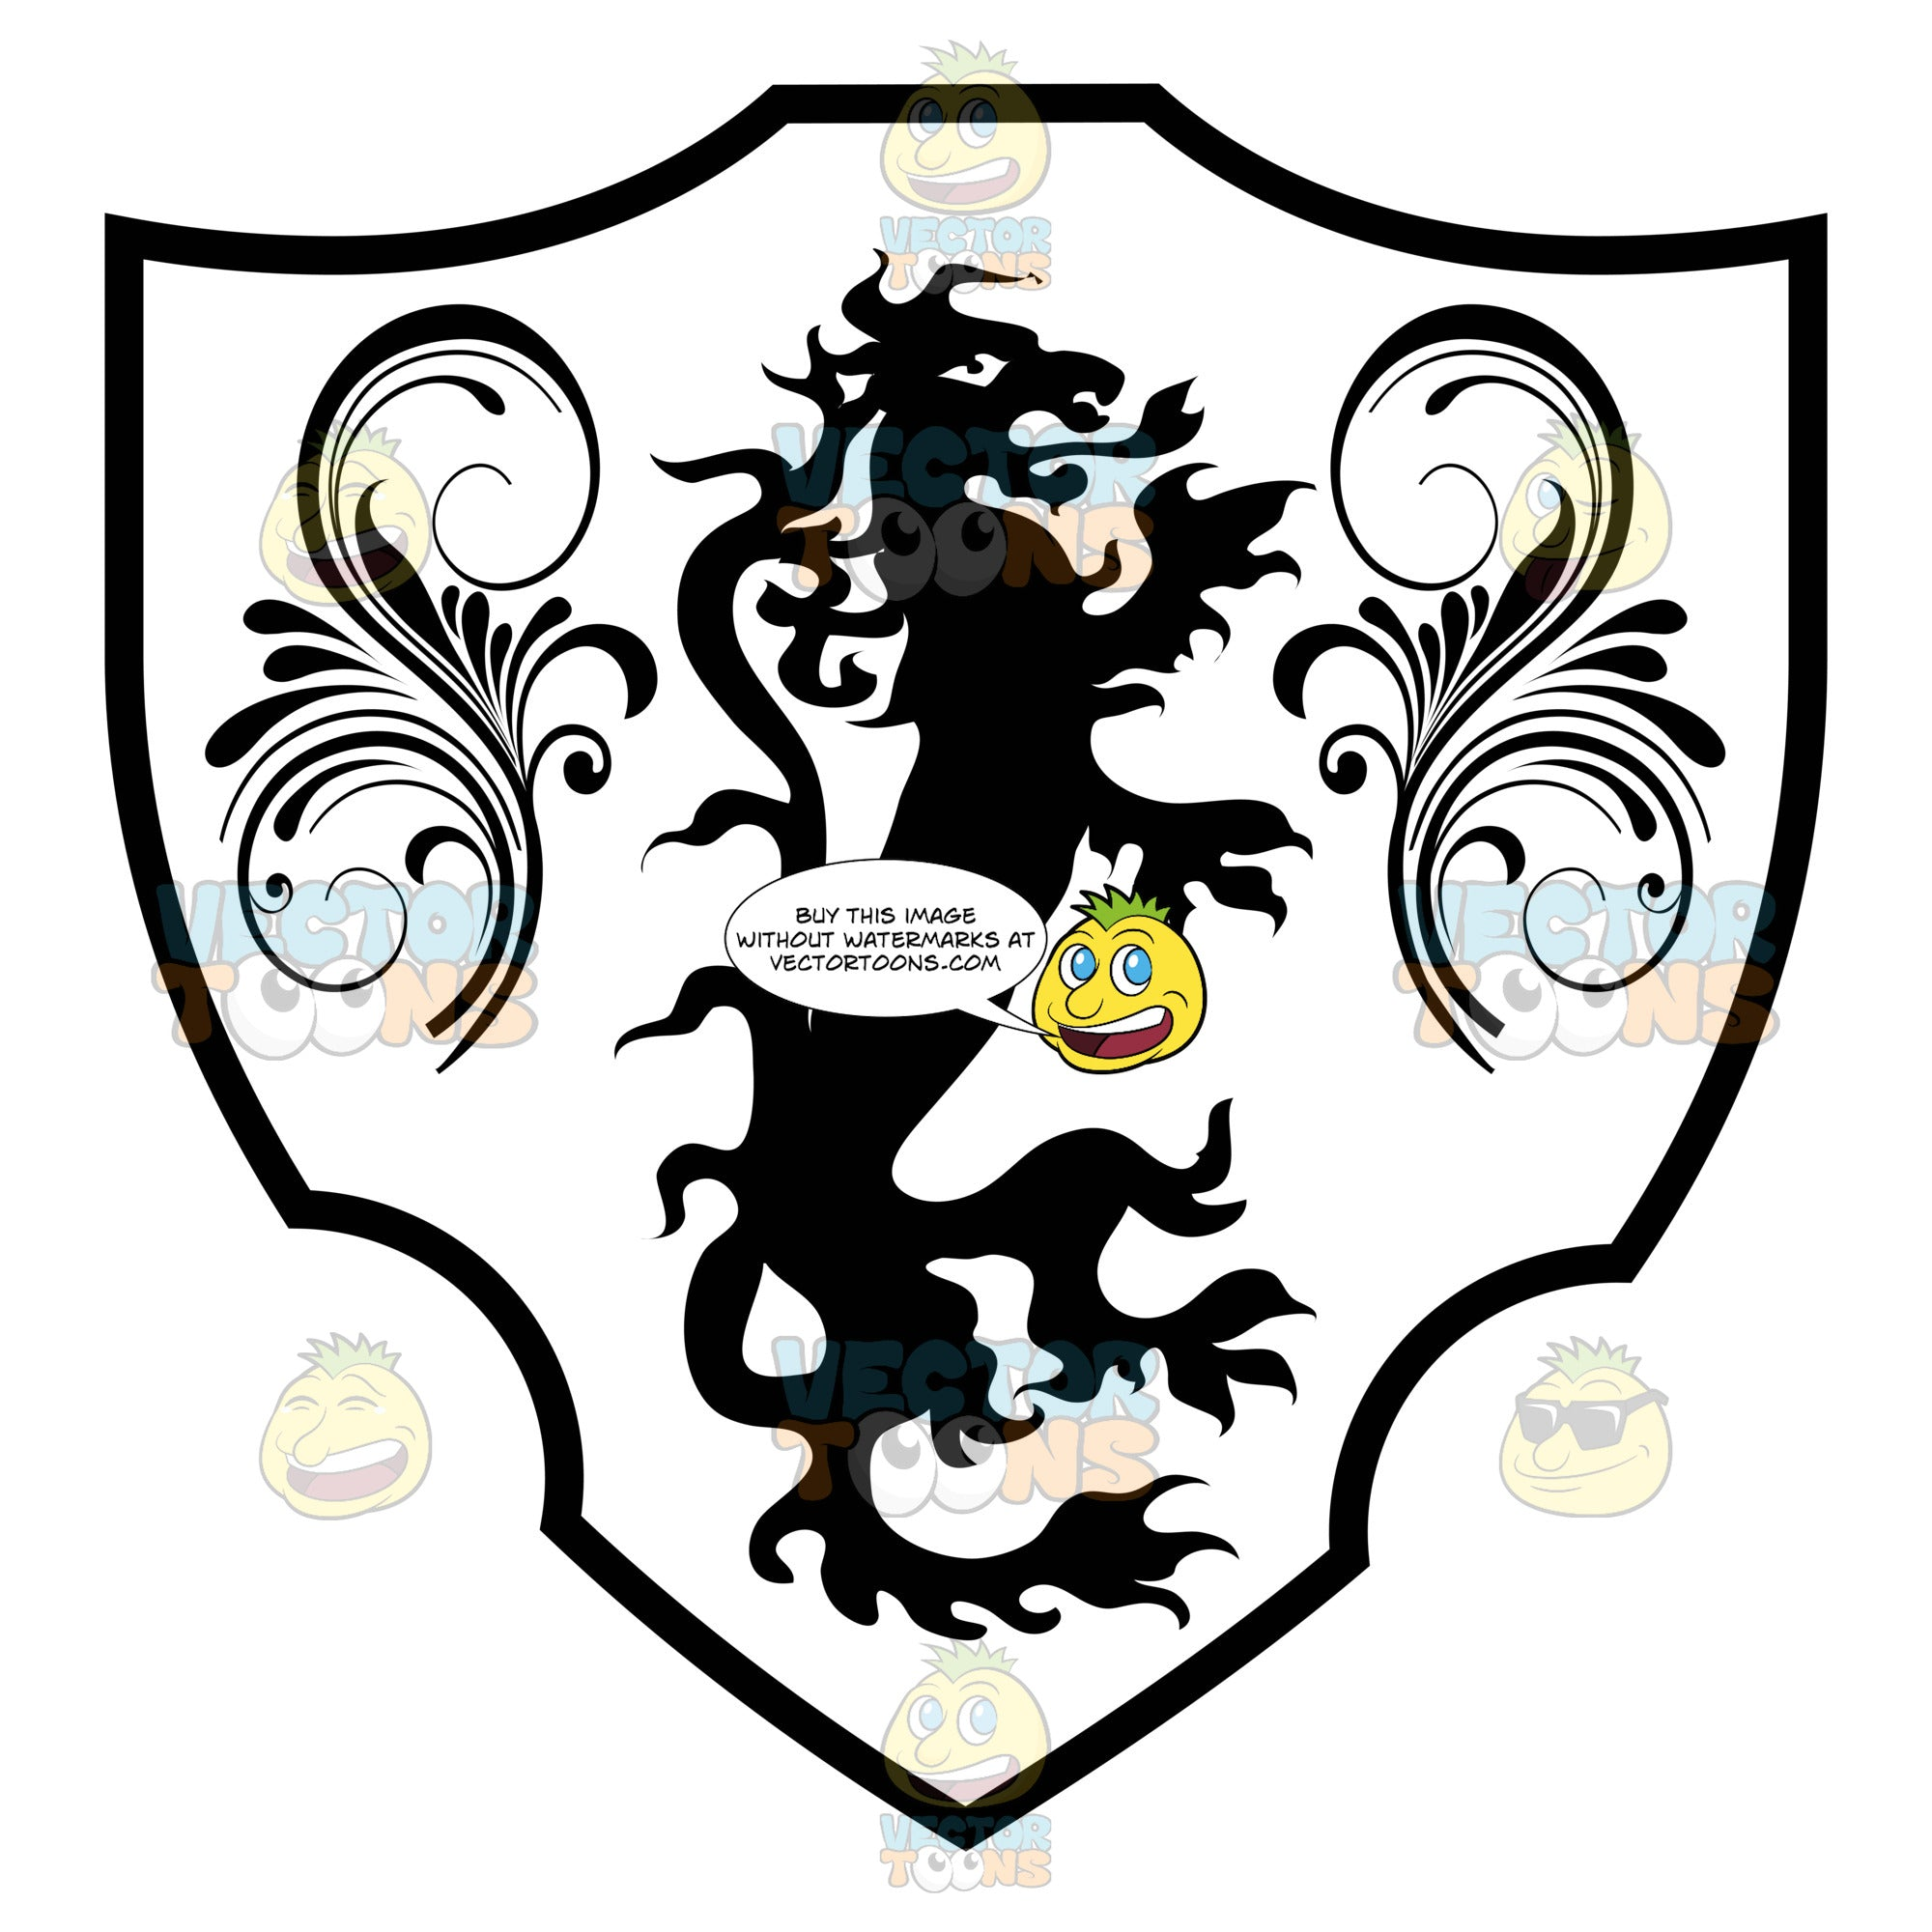 Black And White Medieval Stylized Long Thin Dragon With Ornate Florishes On Both Sides Coat Of Arms Inside Geometric Plaque Shield